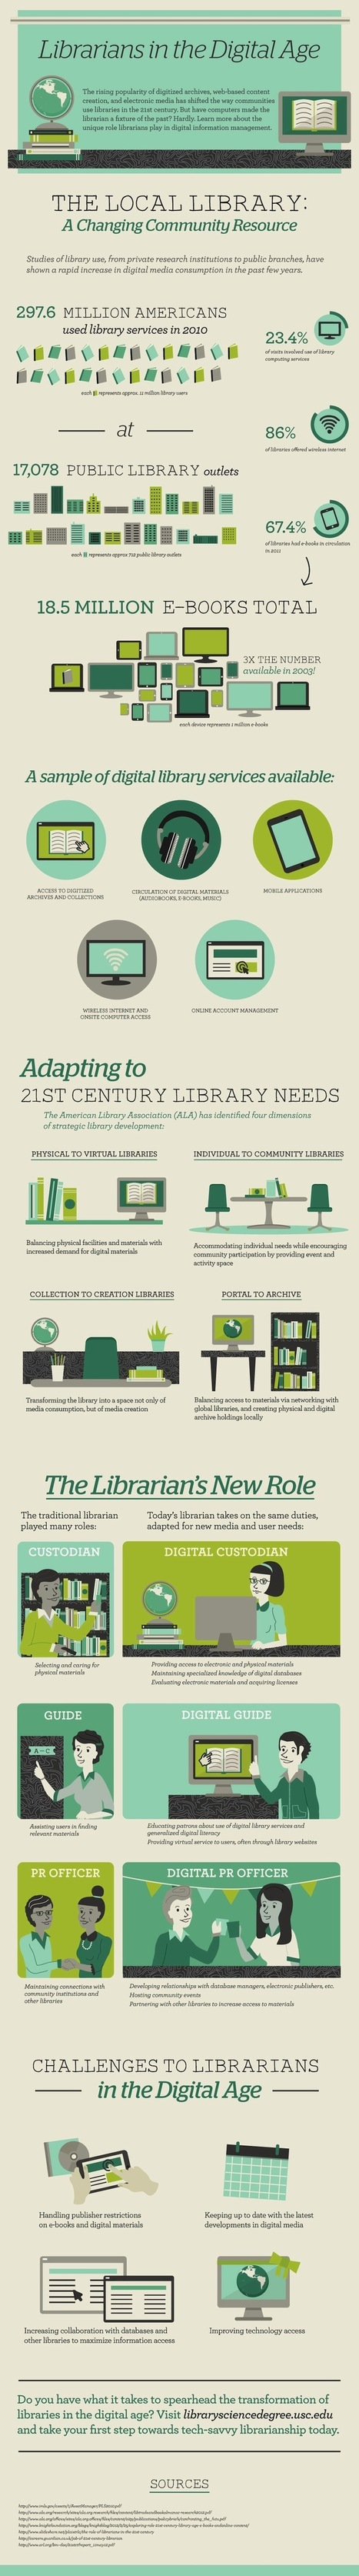 In digital age, librarians are needed more than ever [infographic] | Educomunicación | Scoop.it